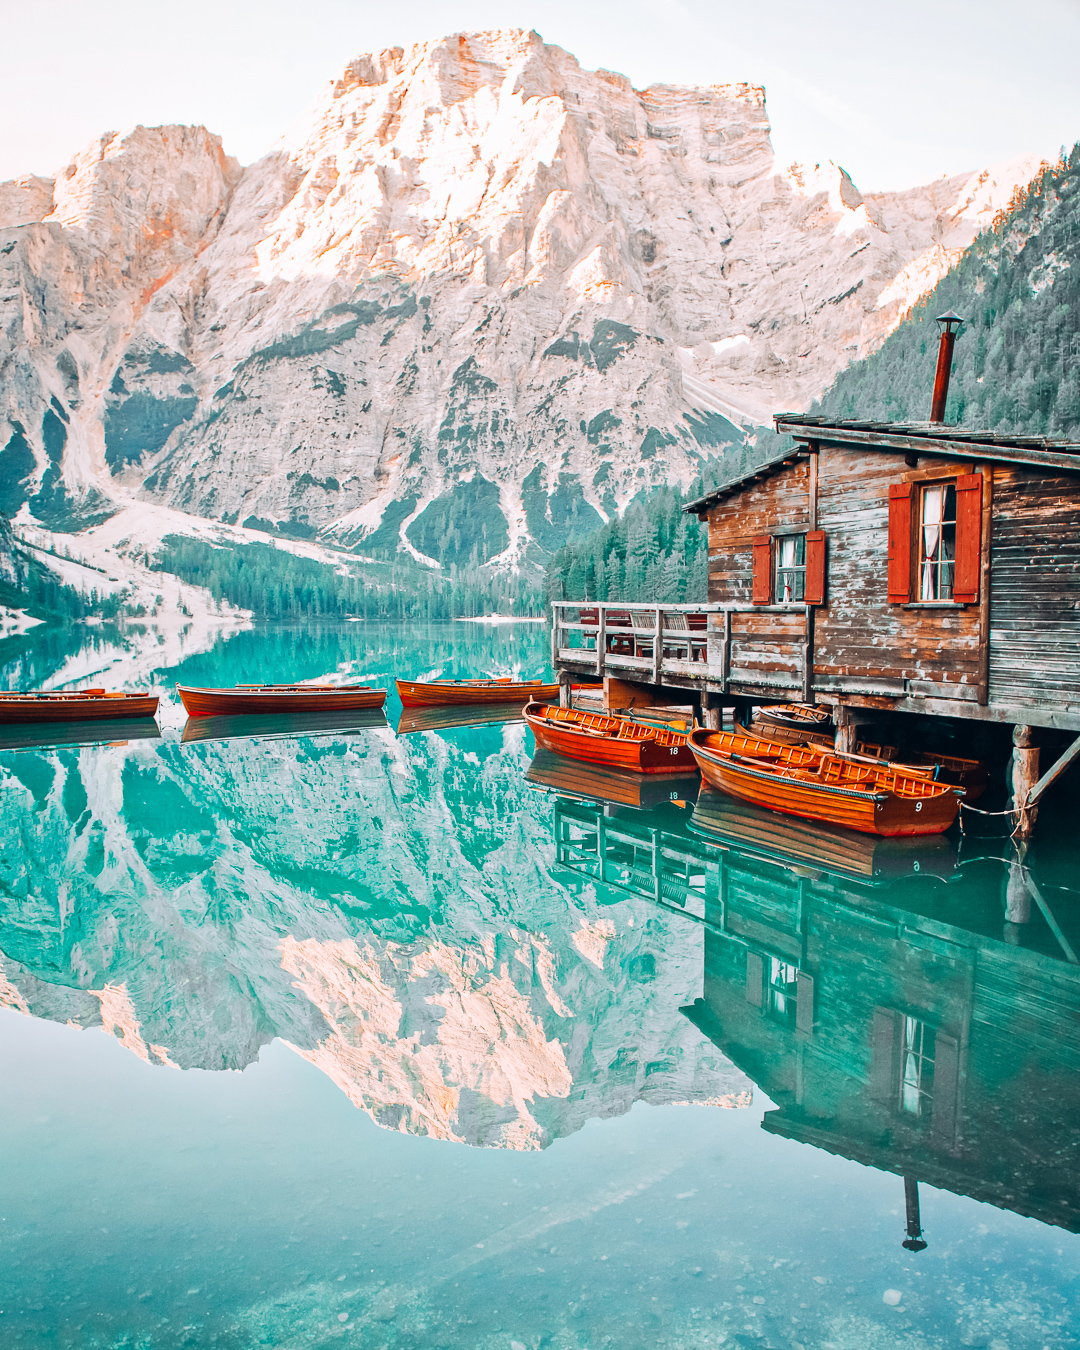 Boats and water in Lago di Braies